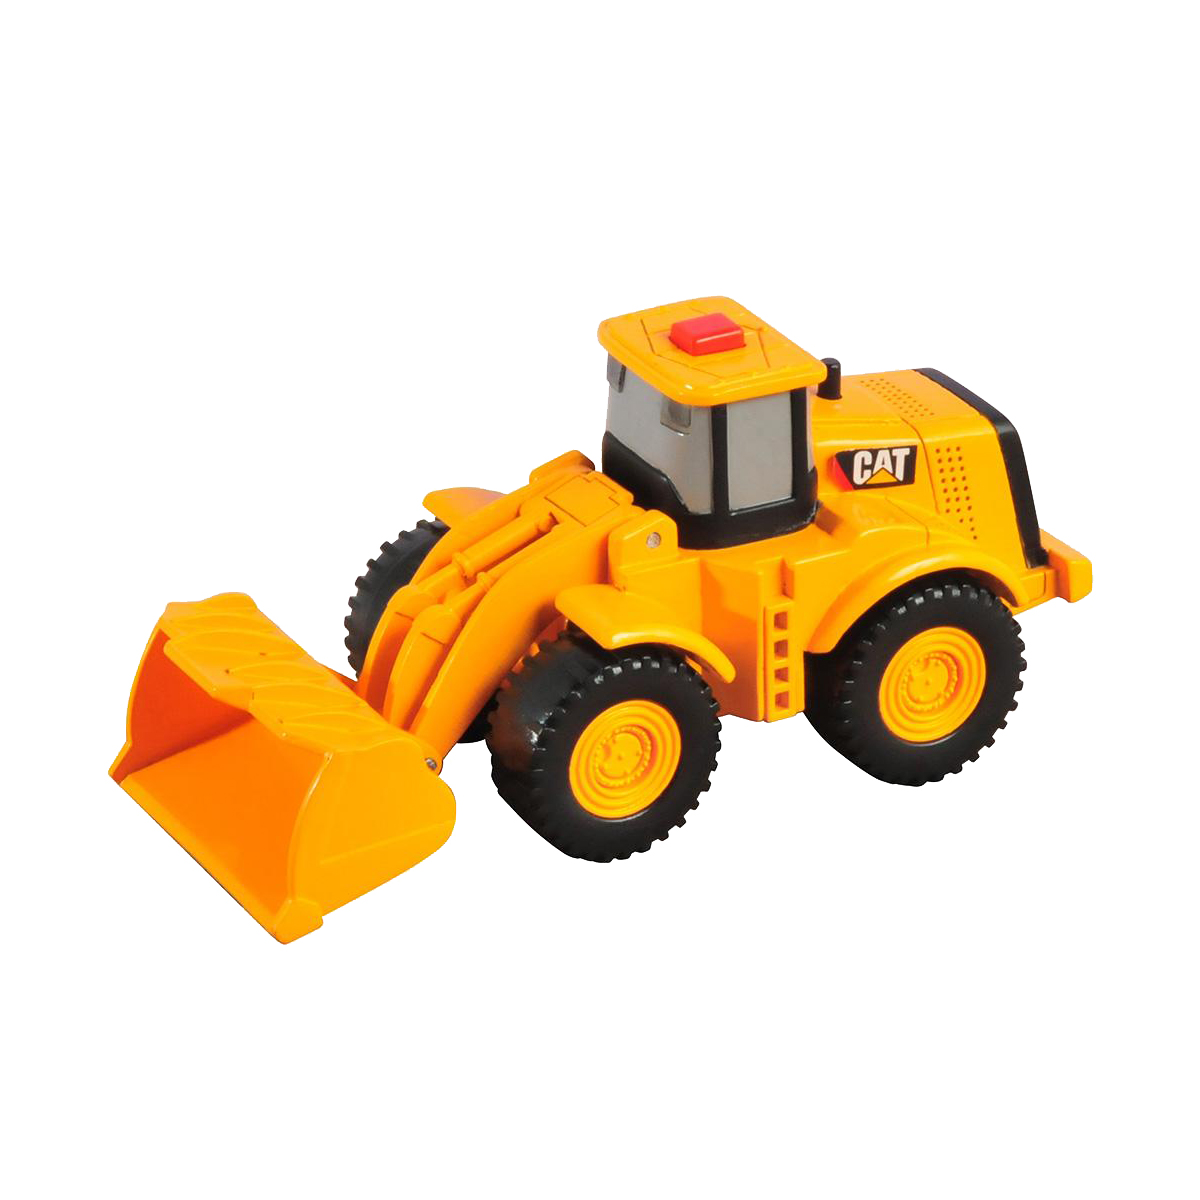 excavator toy state cat flash rides